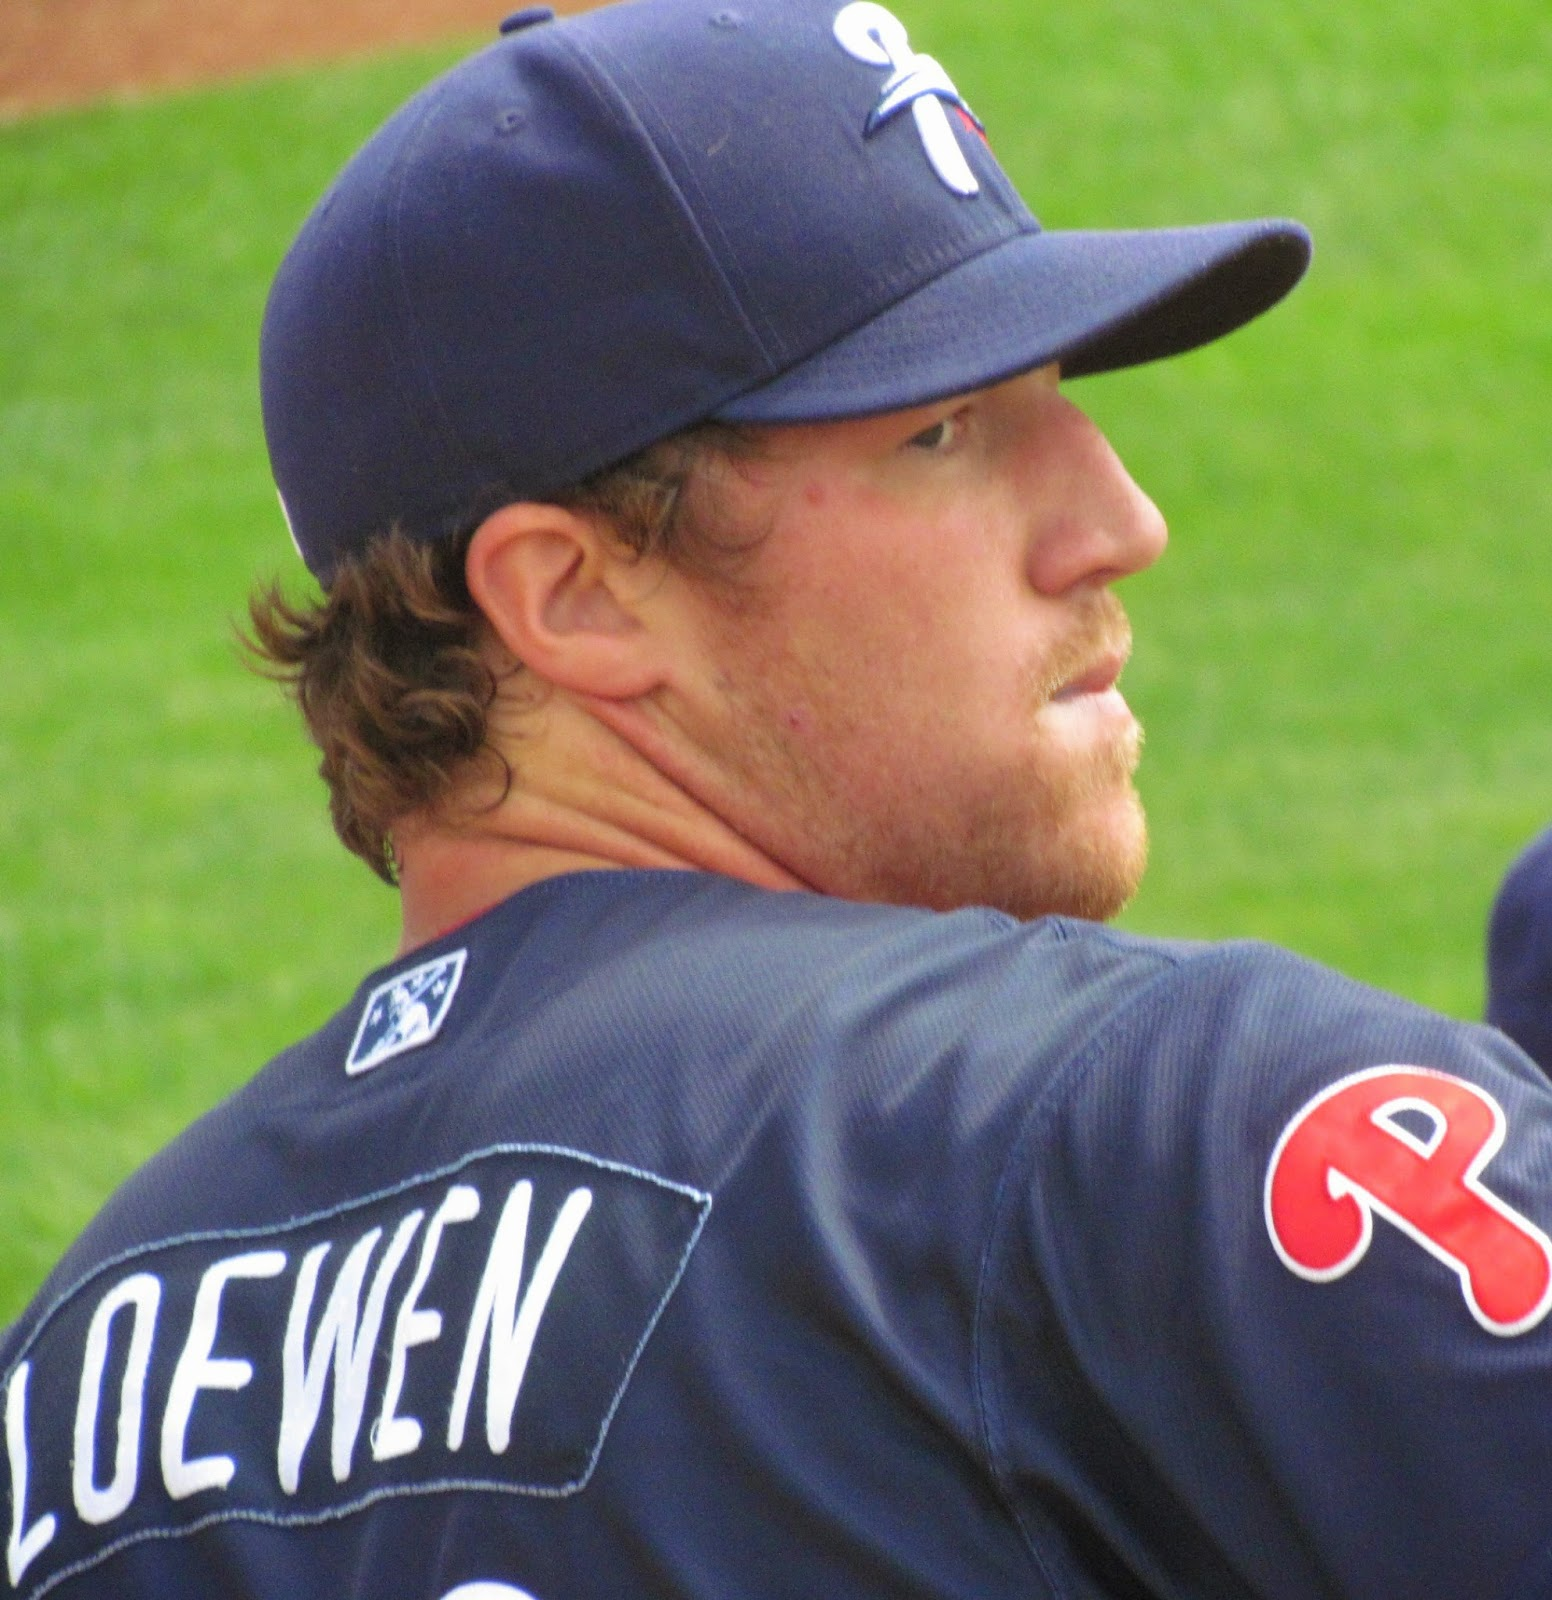 Adam Loewen (Surrey, BC) has a 2.05 ERA as well as 39 strikeouts in 30 2/3 innings at triple-A Lehigh Valley, one phone away from making it to the majors with the Philadelphia Phillies.